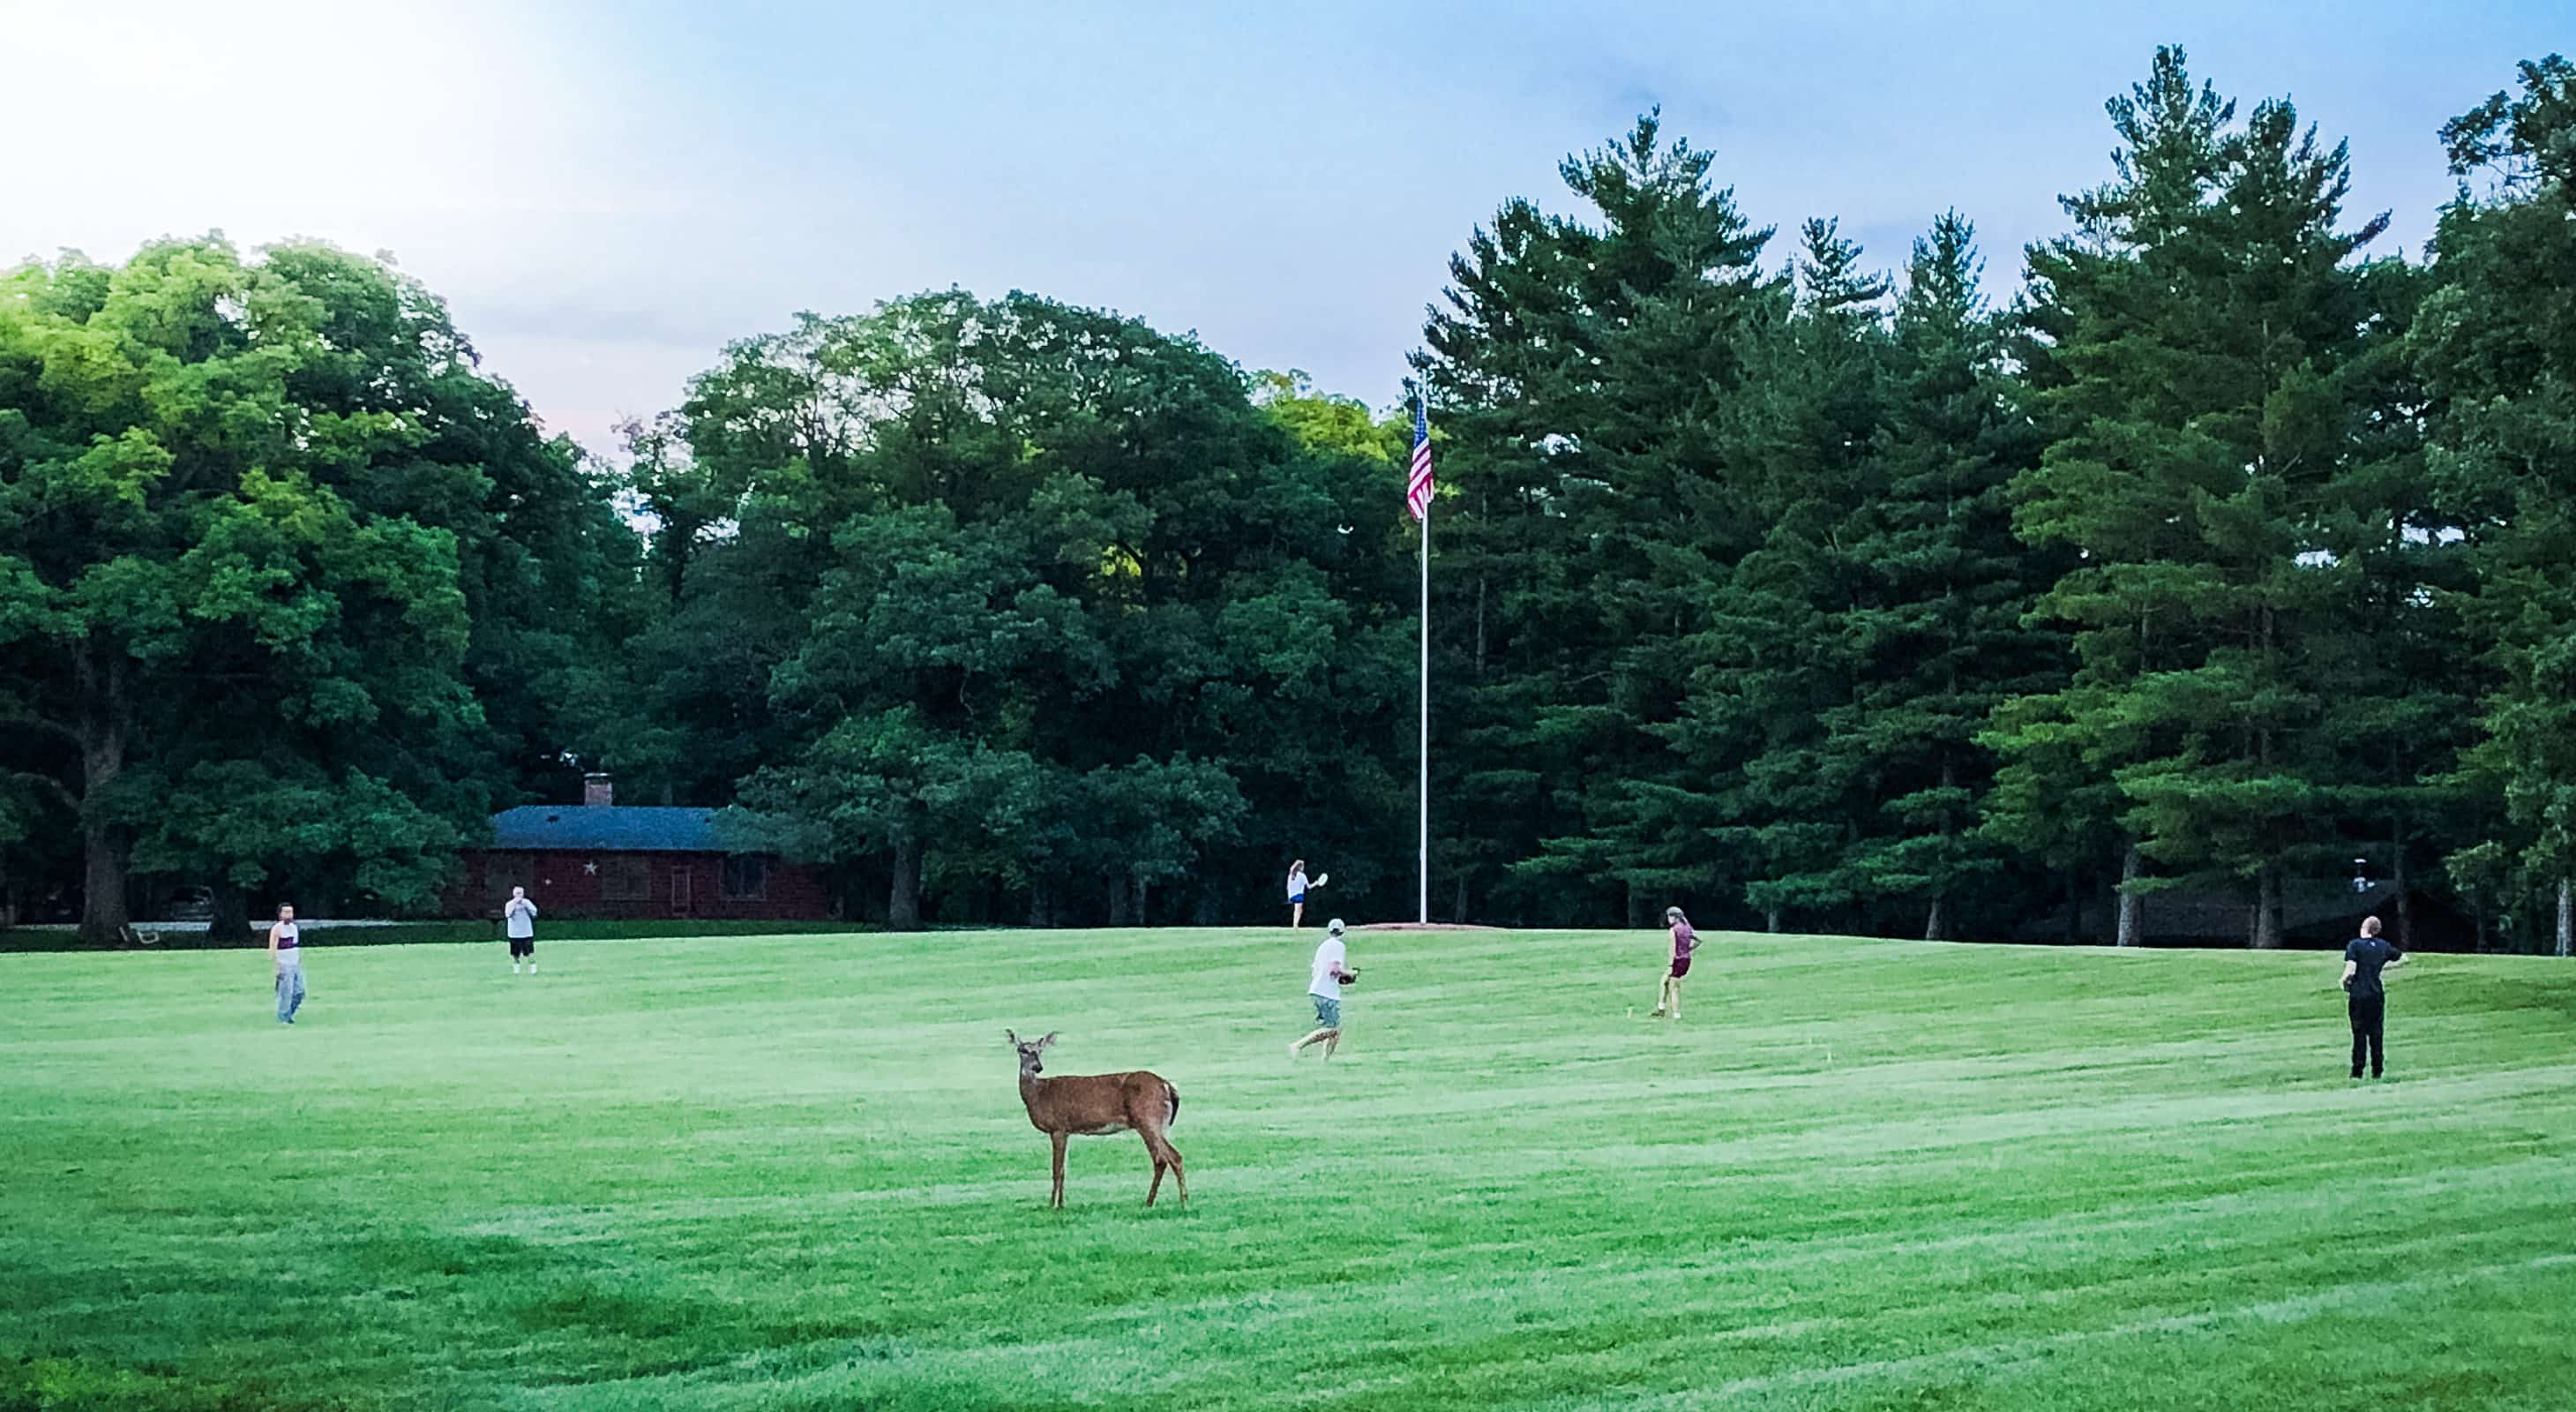 Deer in grassy field with people playing frisbee in background